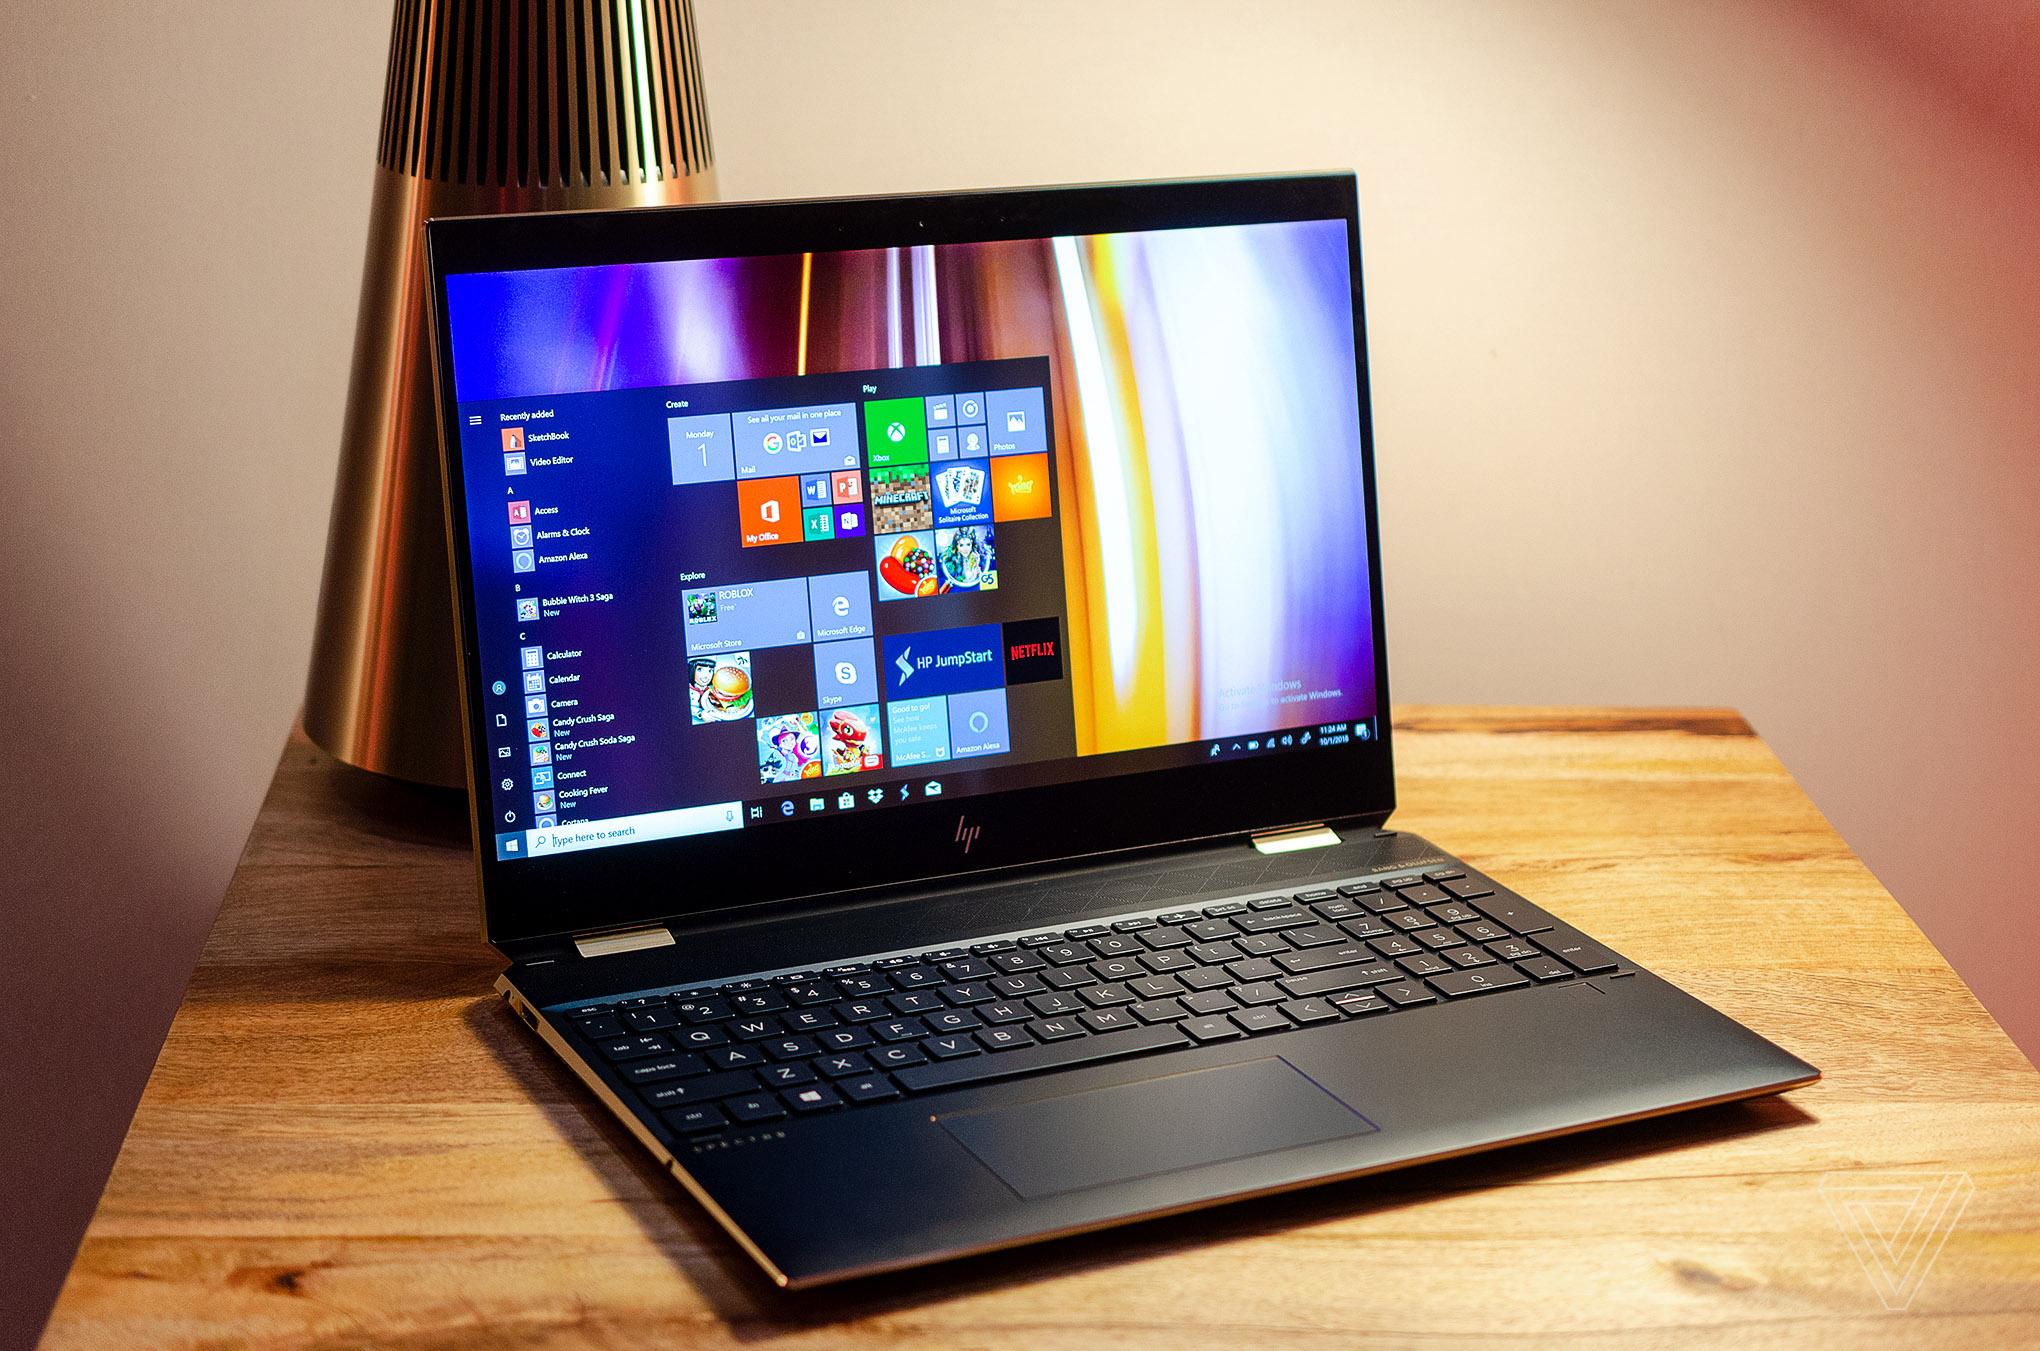 HP's latest Spectre x360 has a new angular design and 22 5 hours of